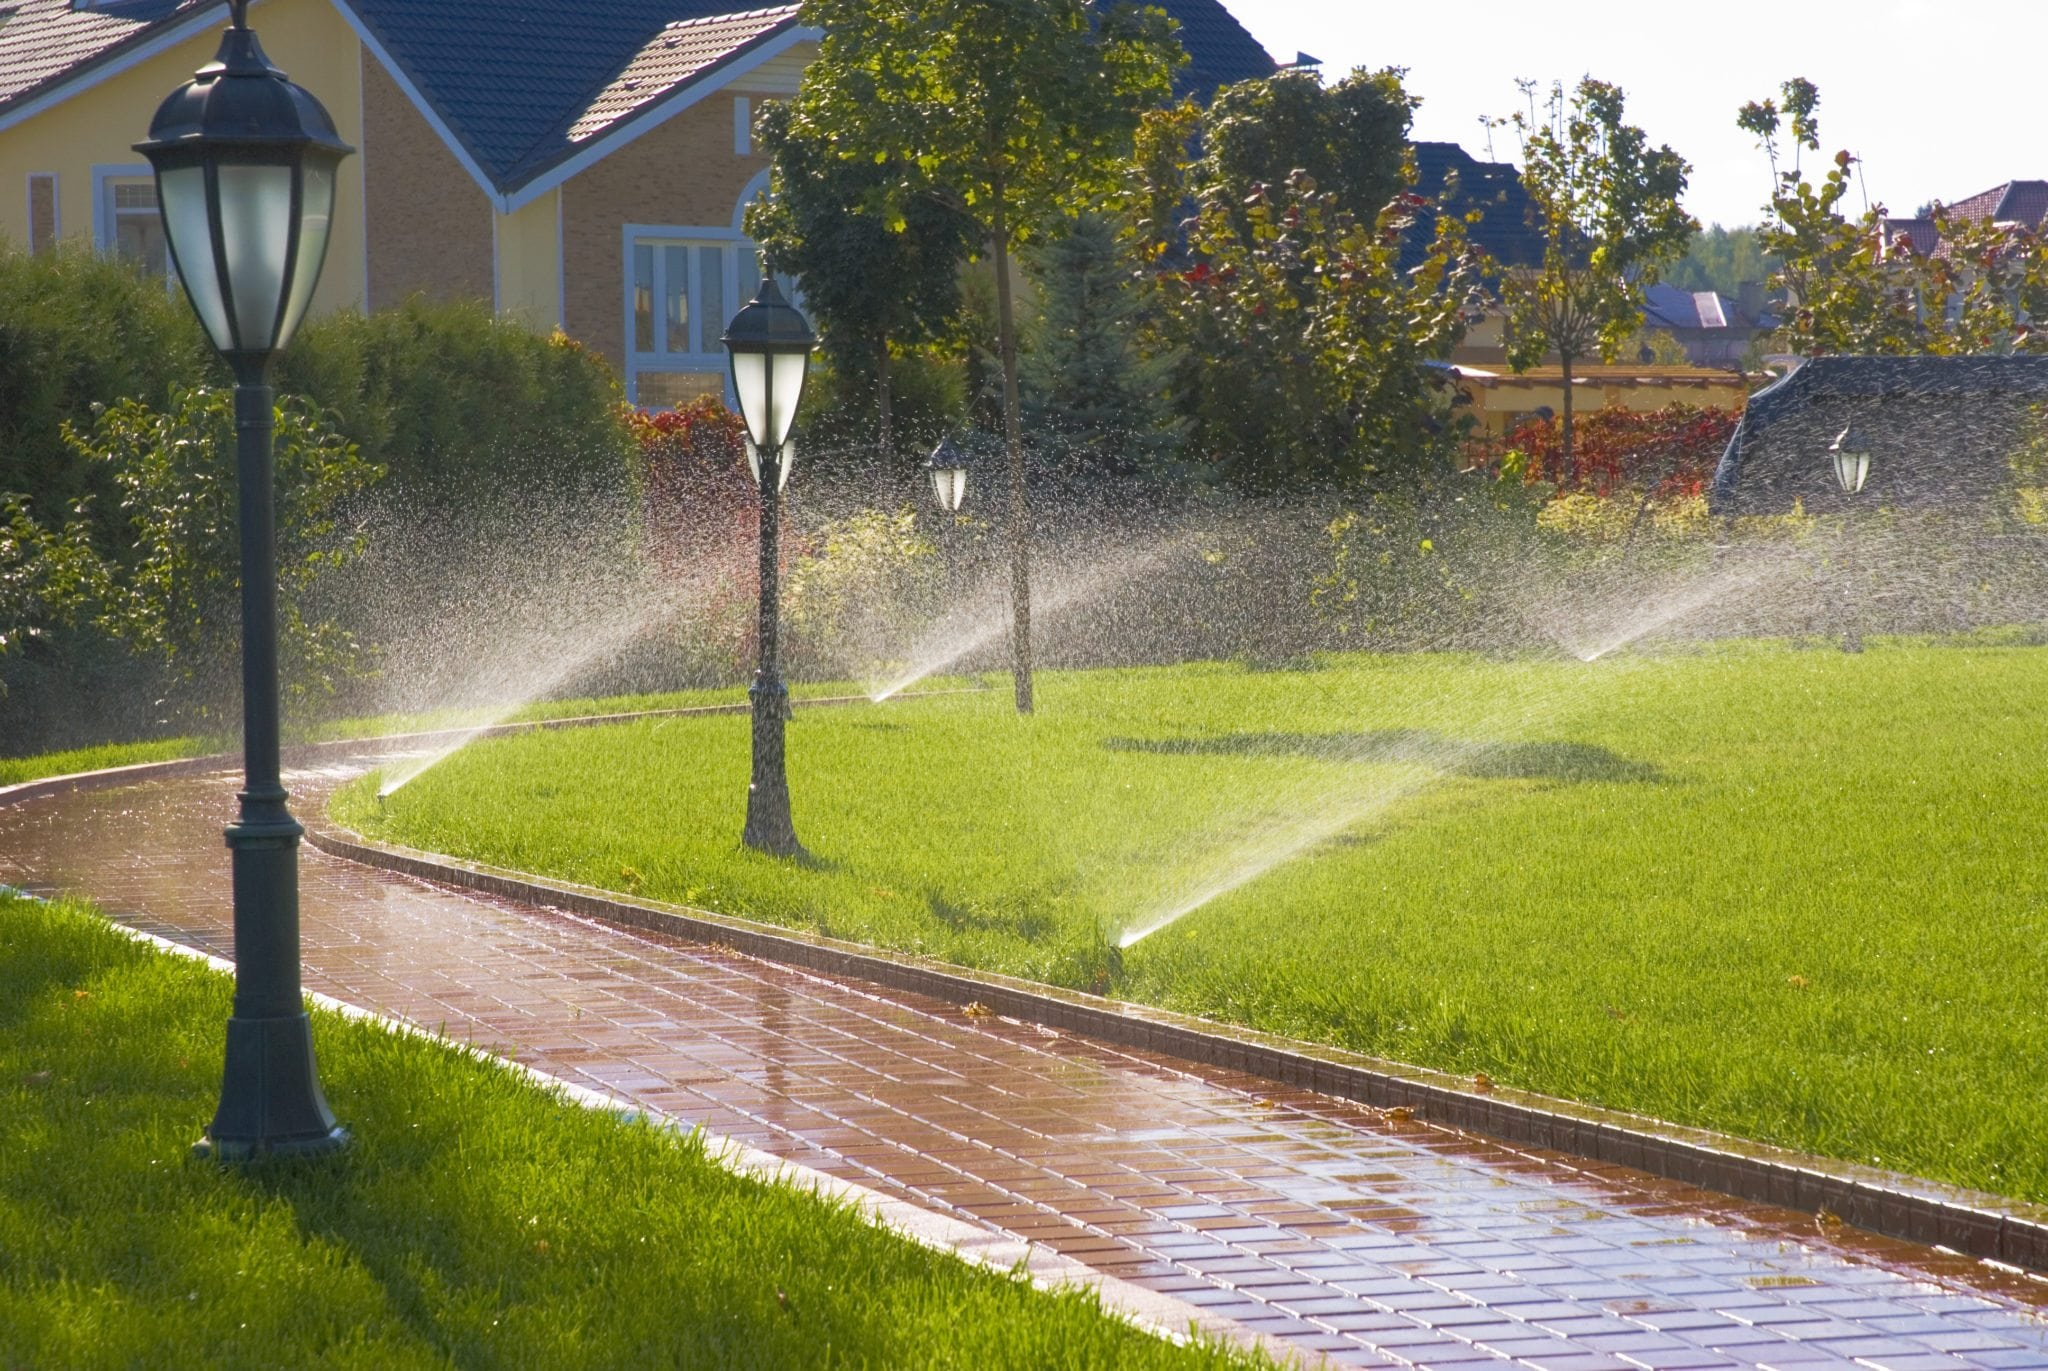 sprinkler system watering in garden